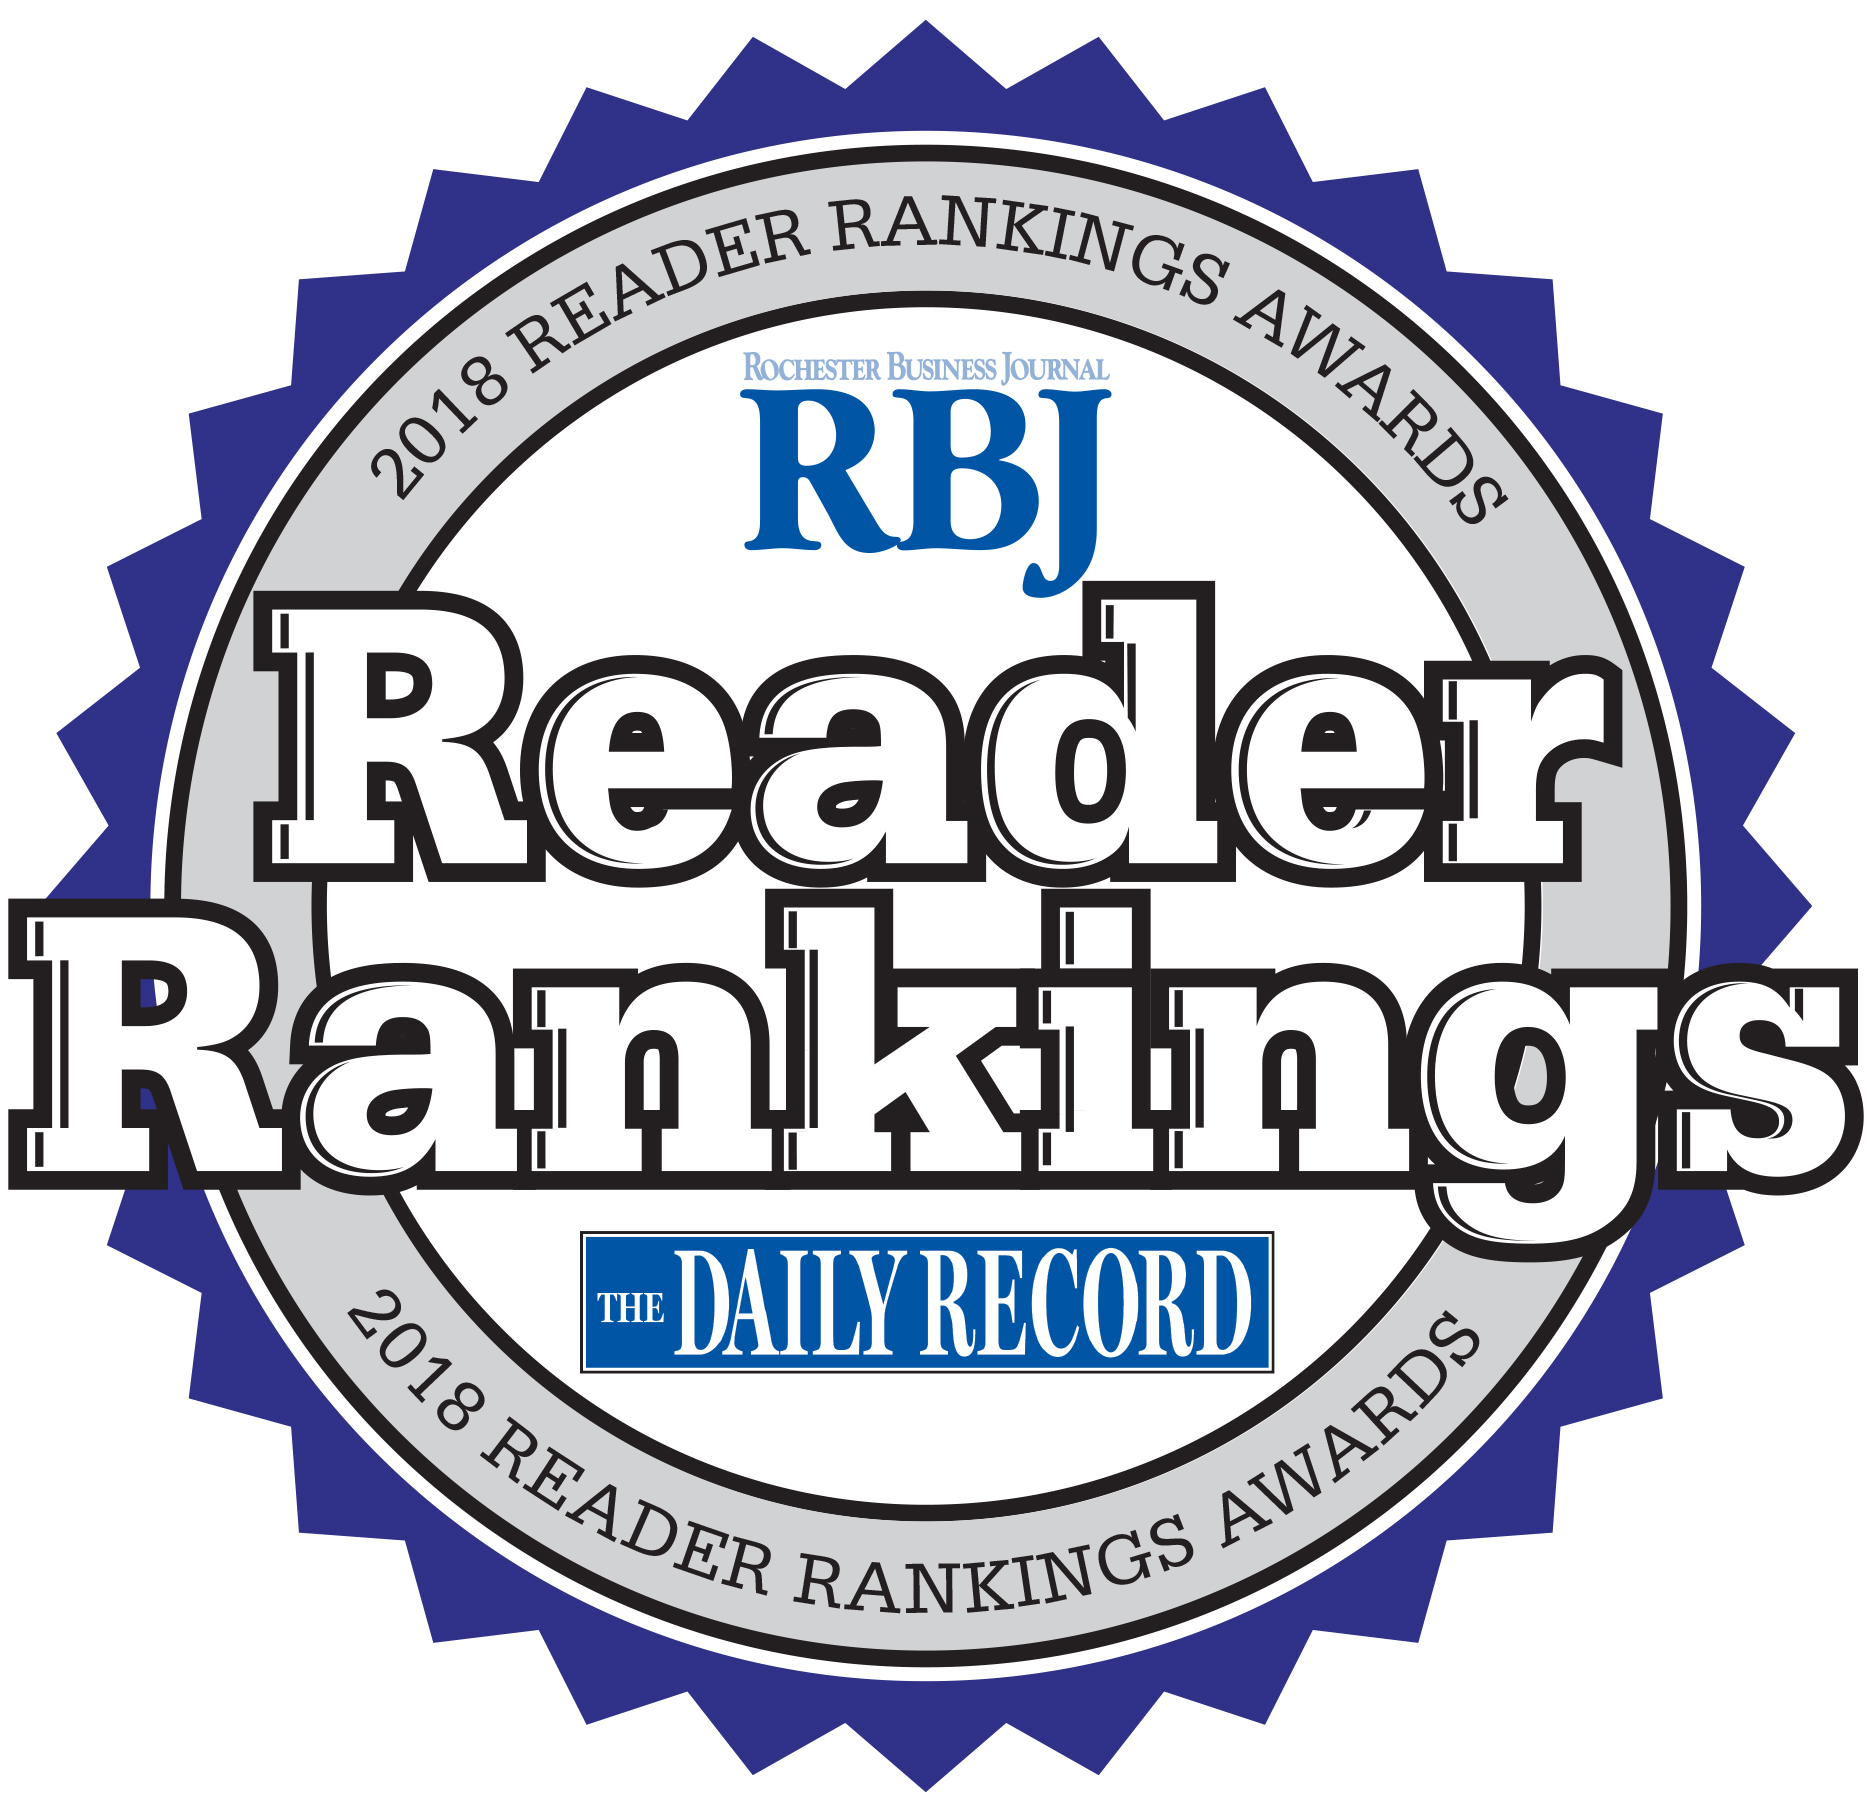 Reader Rankings